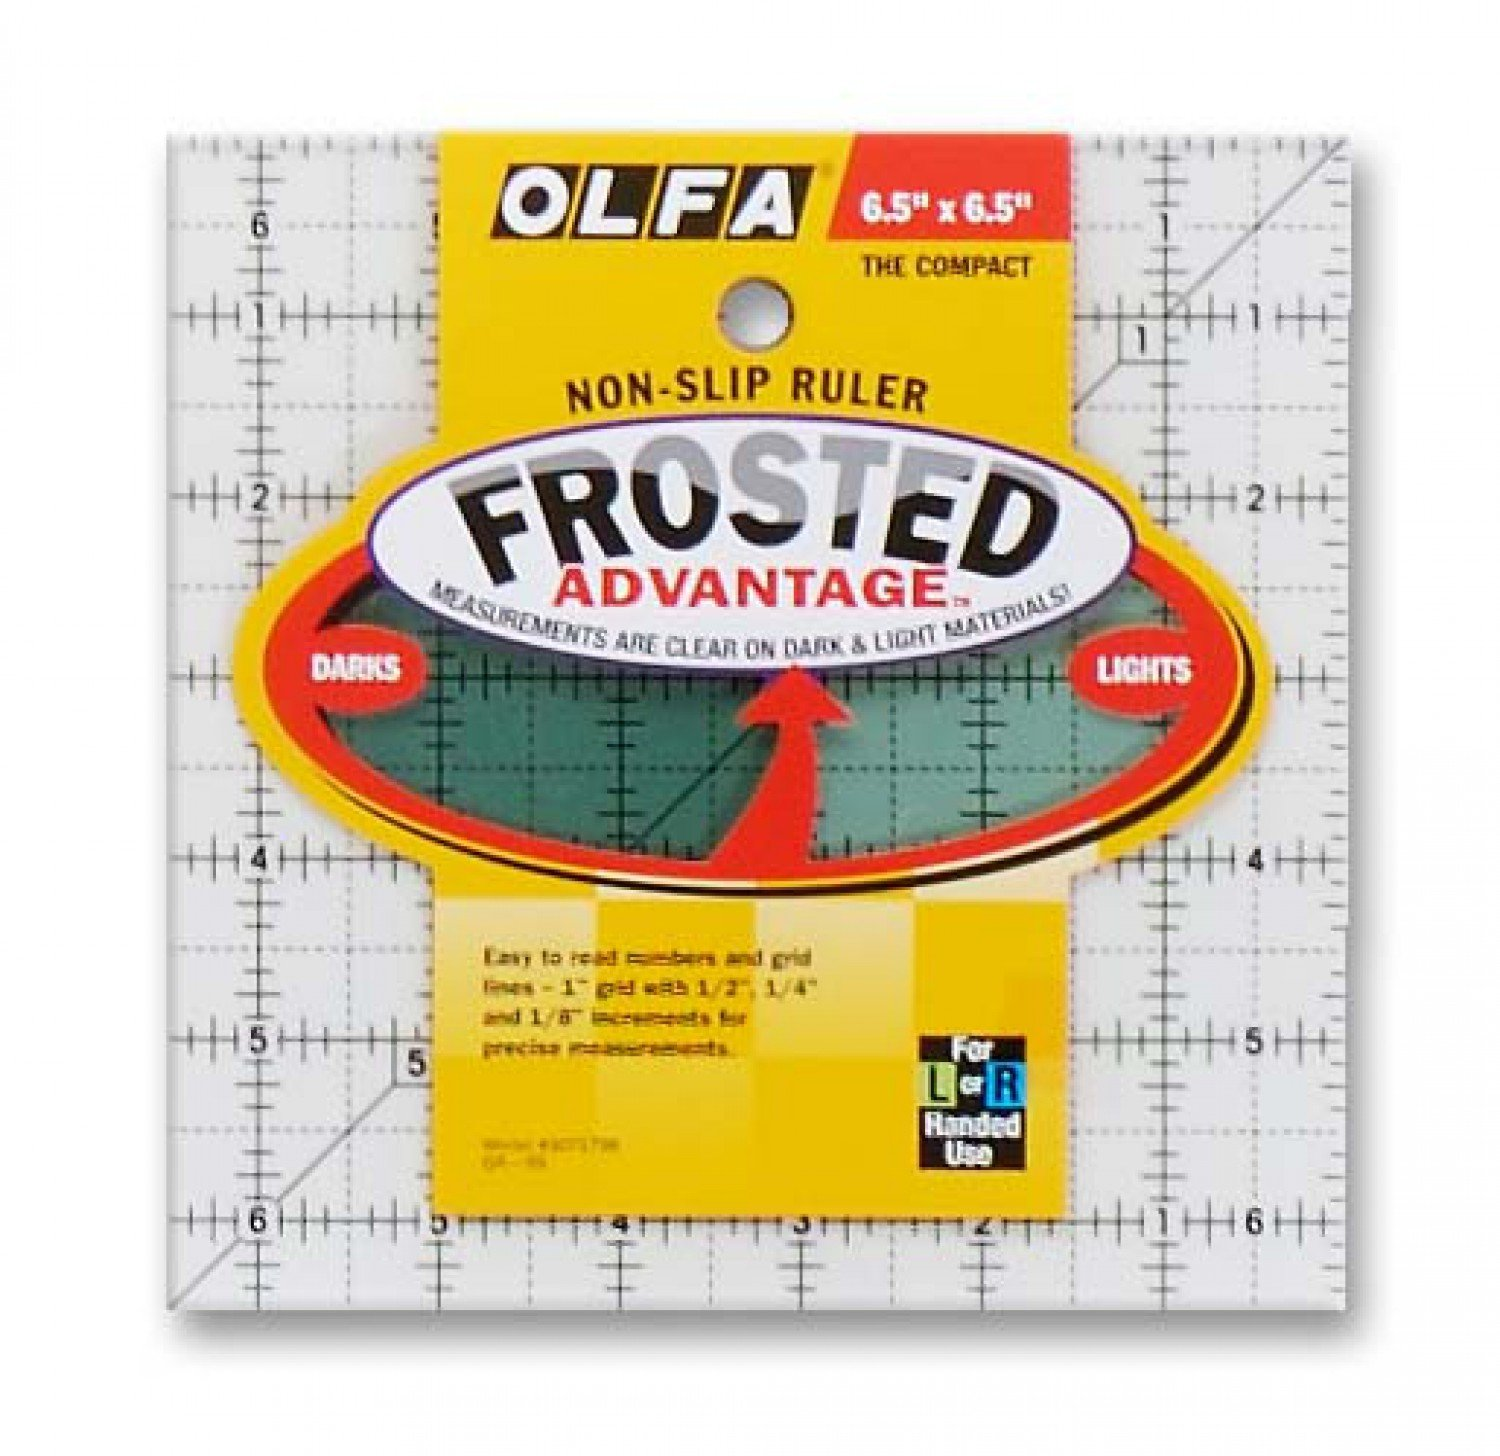 Frosted Acrylic Olfa Ruler 6-1/2 x 6-1/2 - The Compact